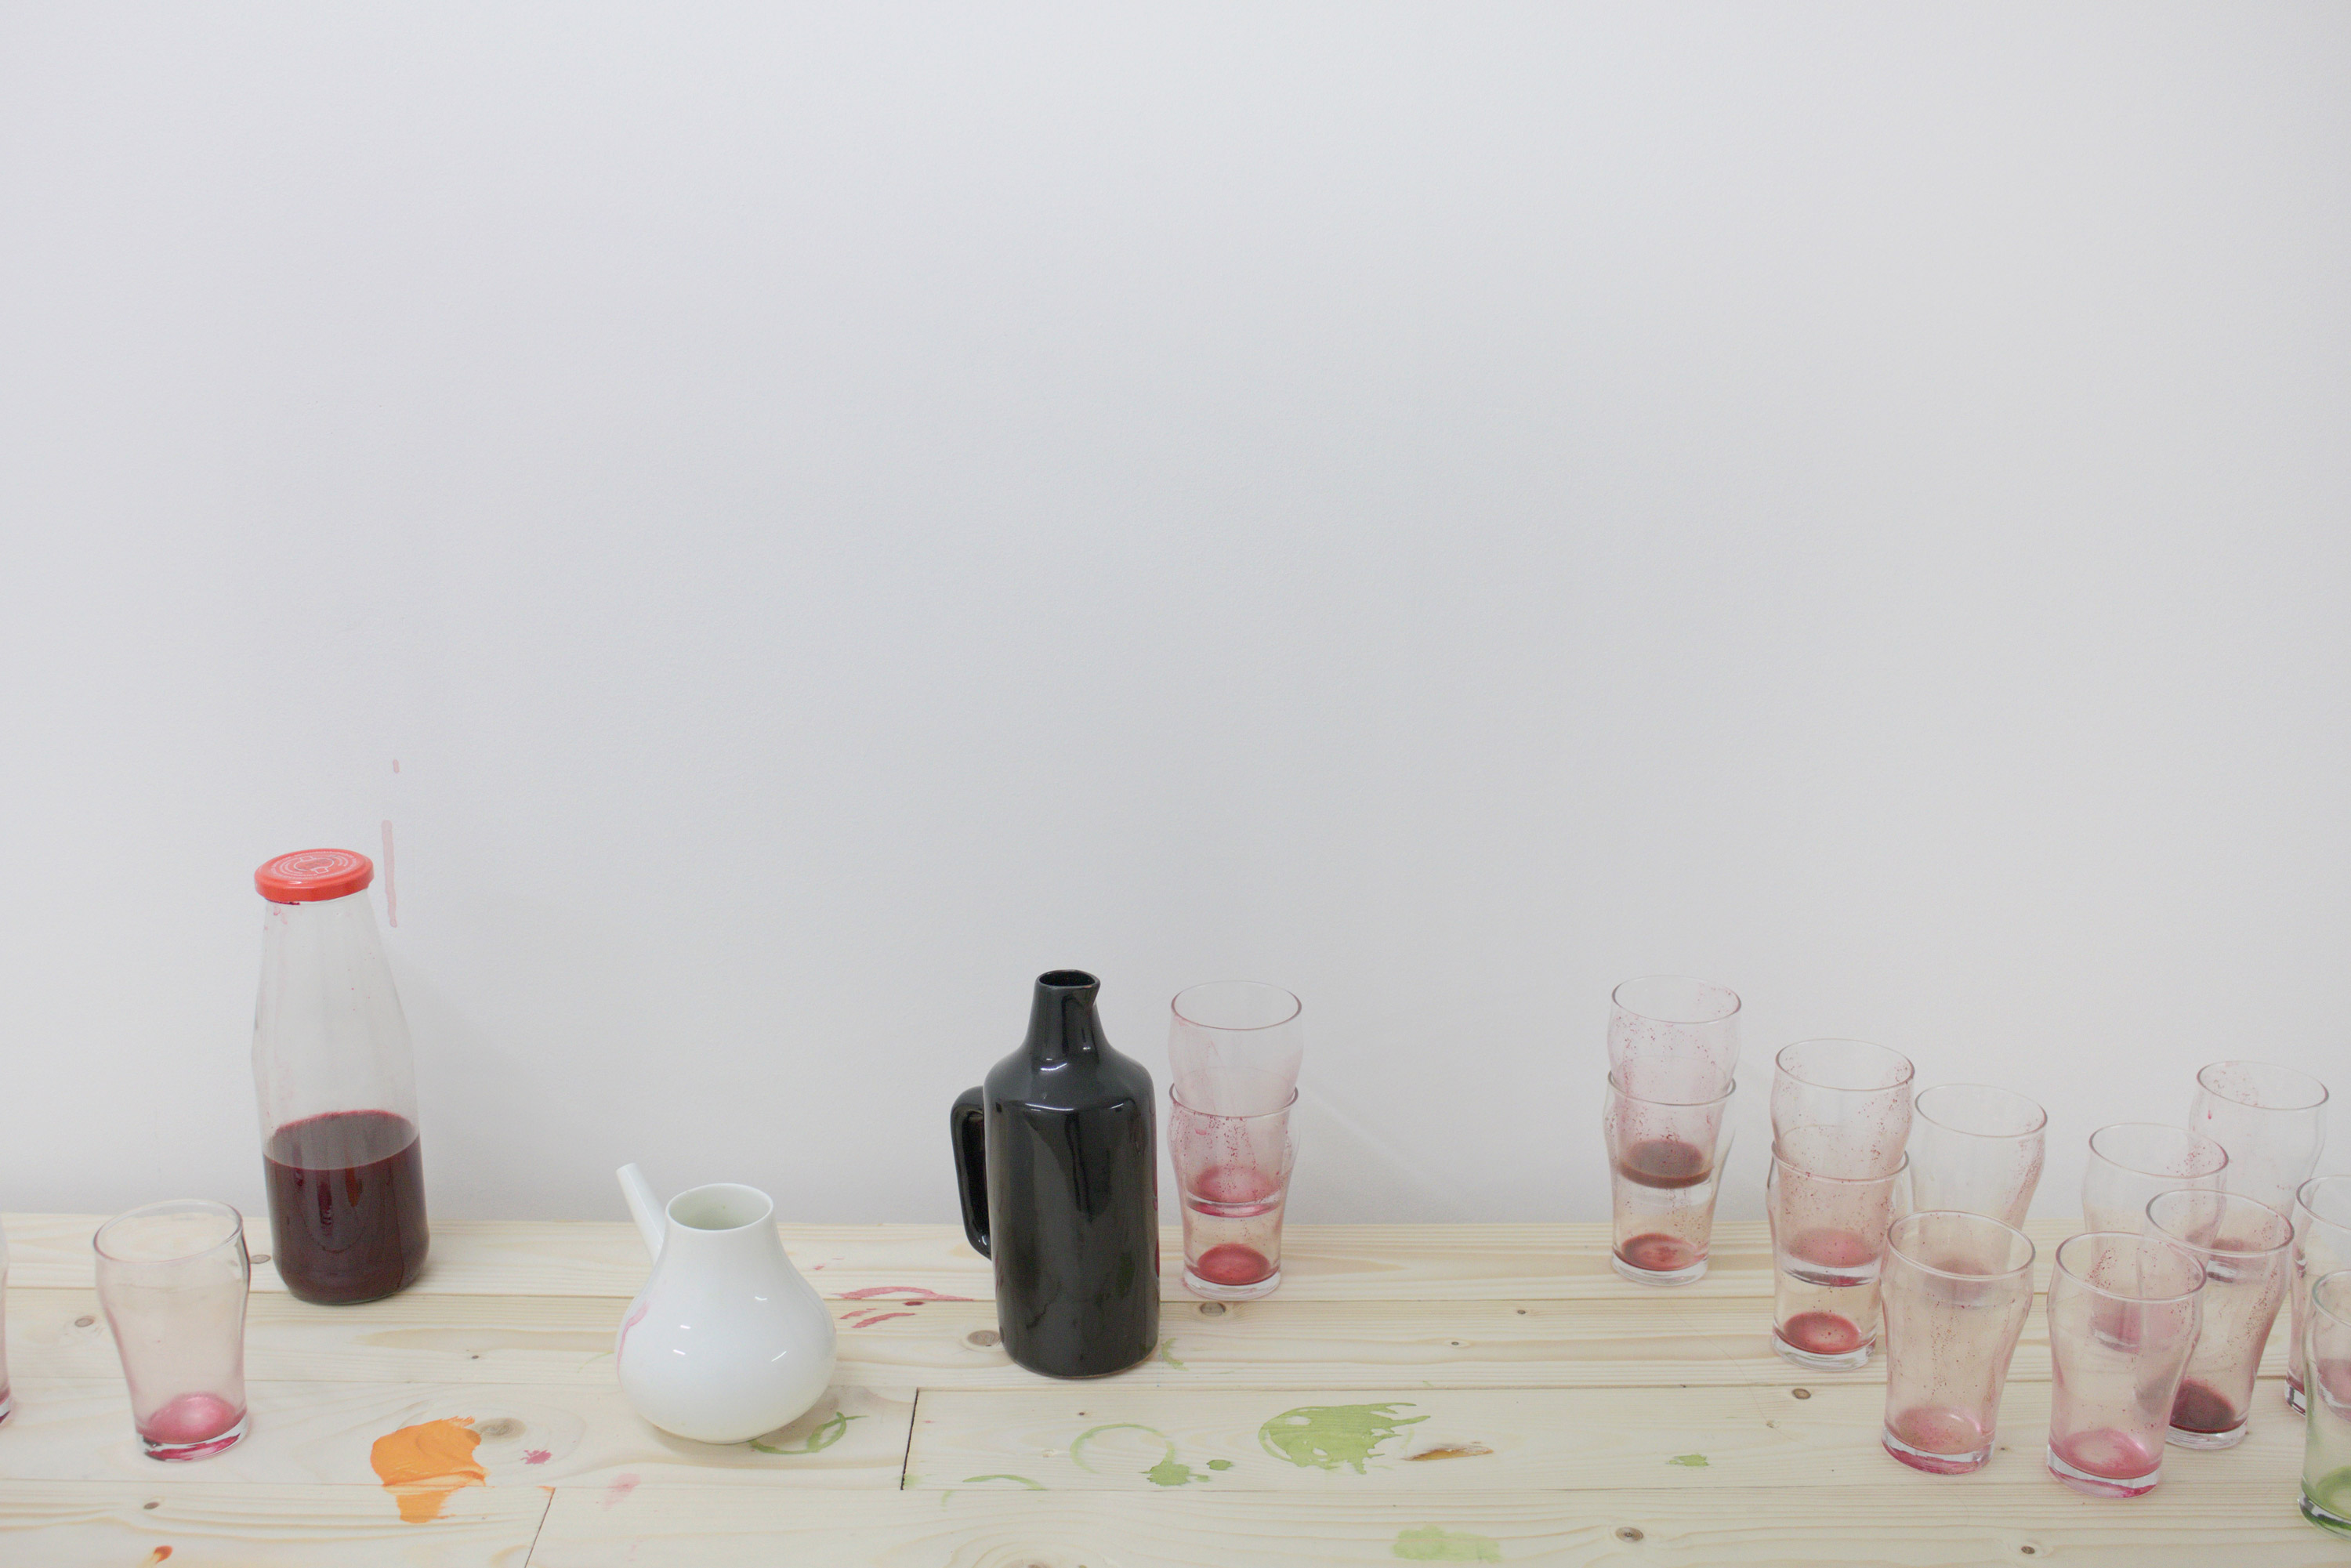 """Nerijus Rimkus, """"It's Not Meant To Be Pretty"""", installation view, The BOX, Arnhem, 2015"""